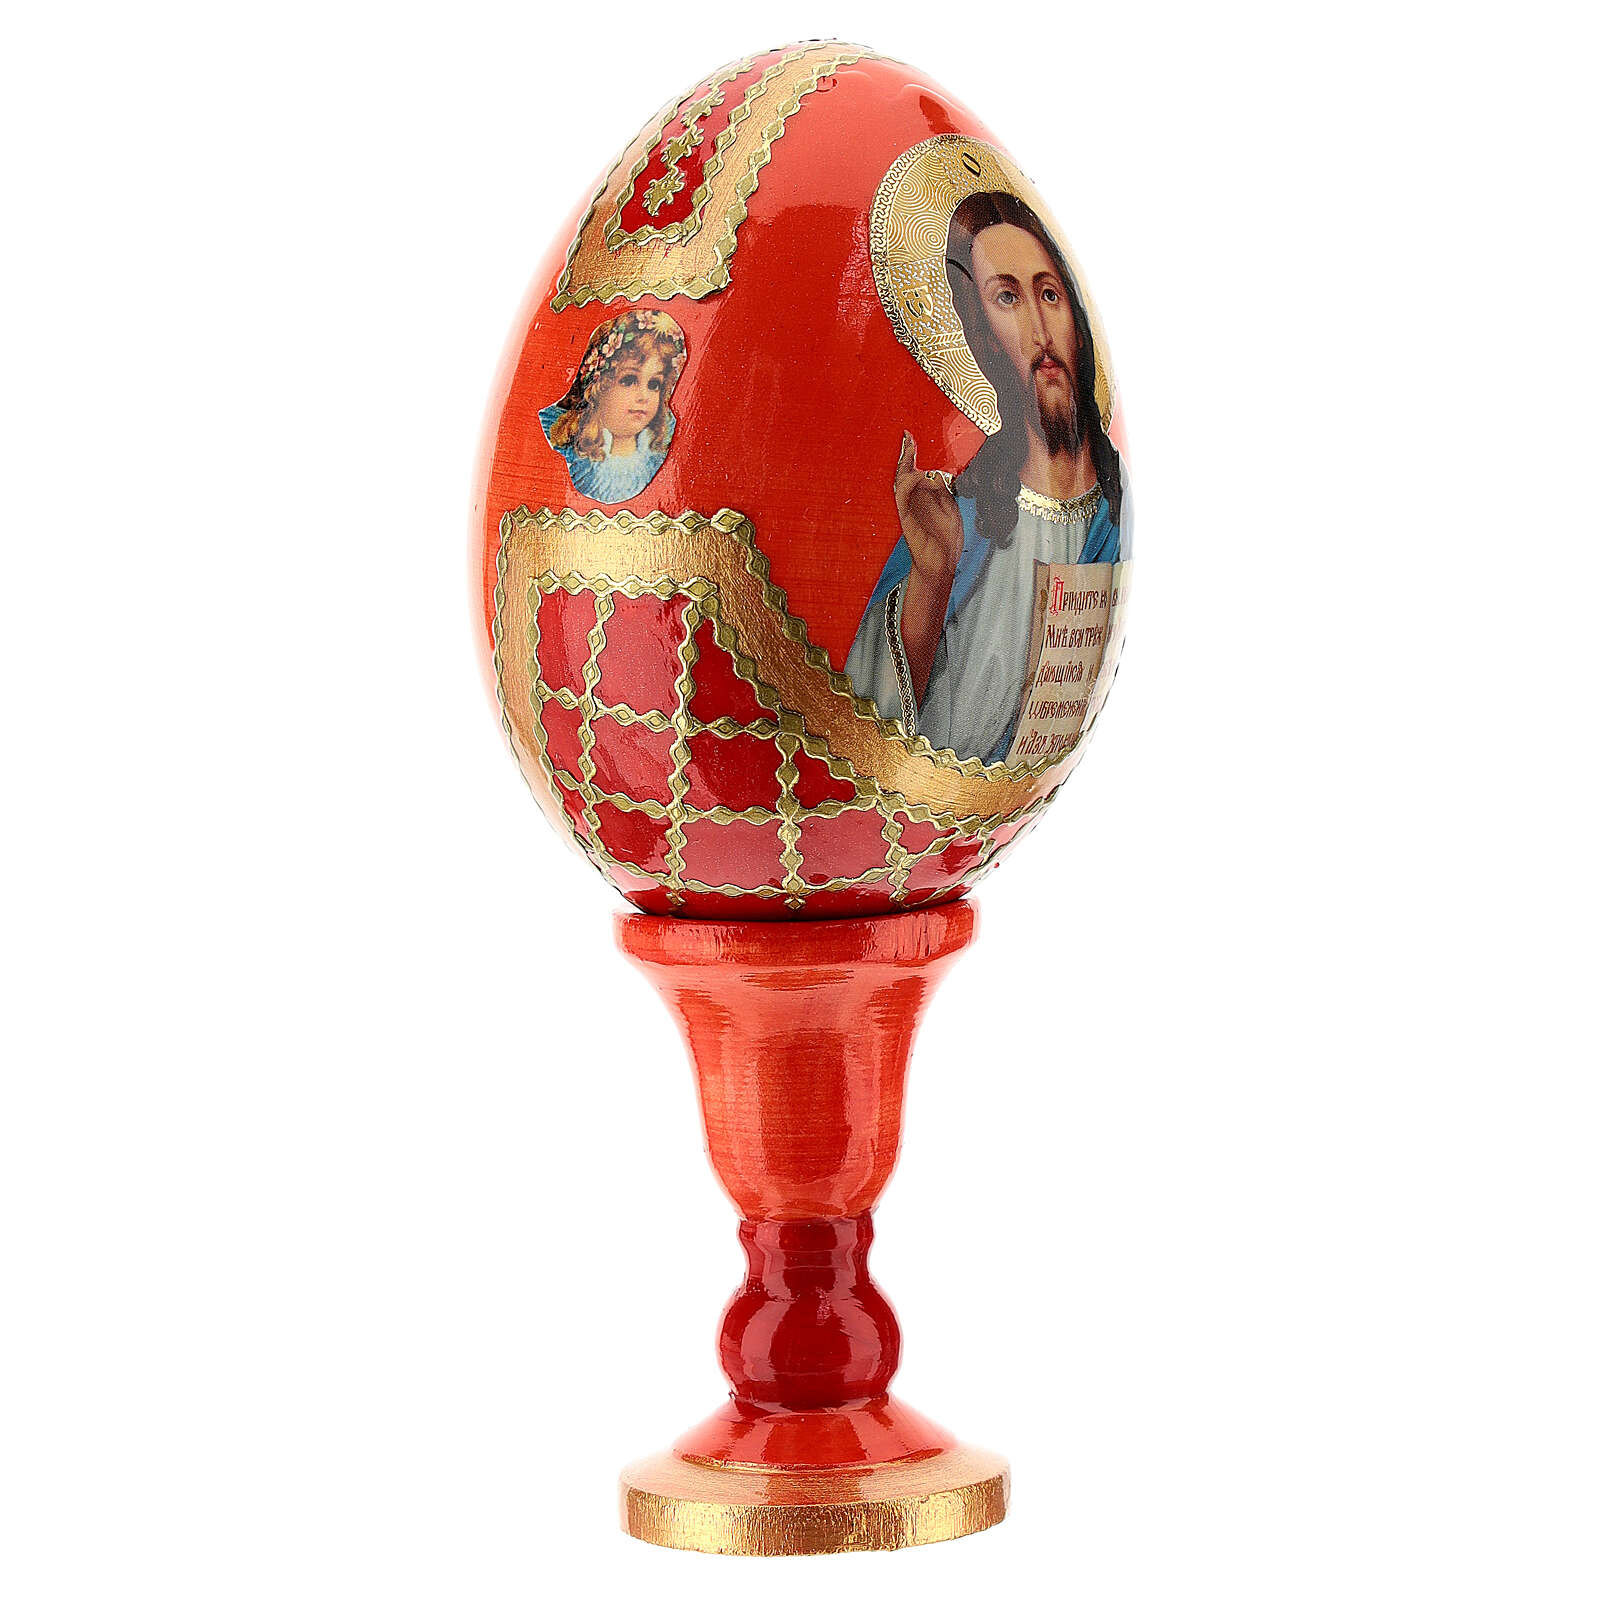 Russian Egg Pantocrator découpage red background, Fabergè style 13cm 4